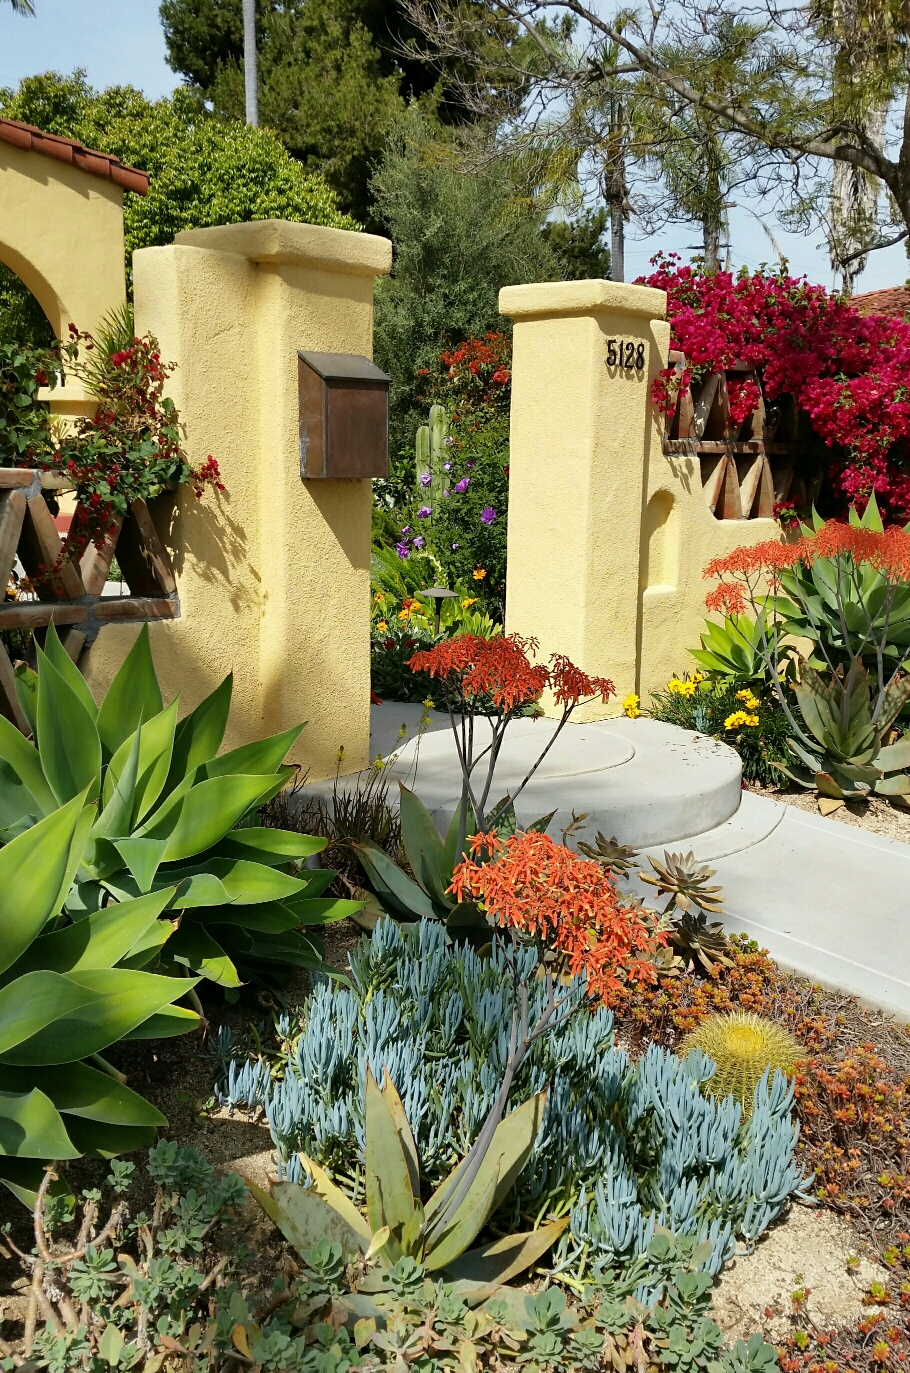 San diego landscape designers - Designs May Include